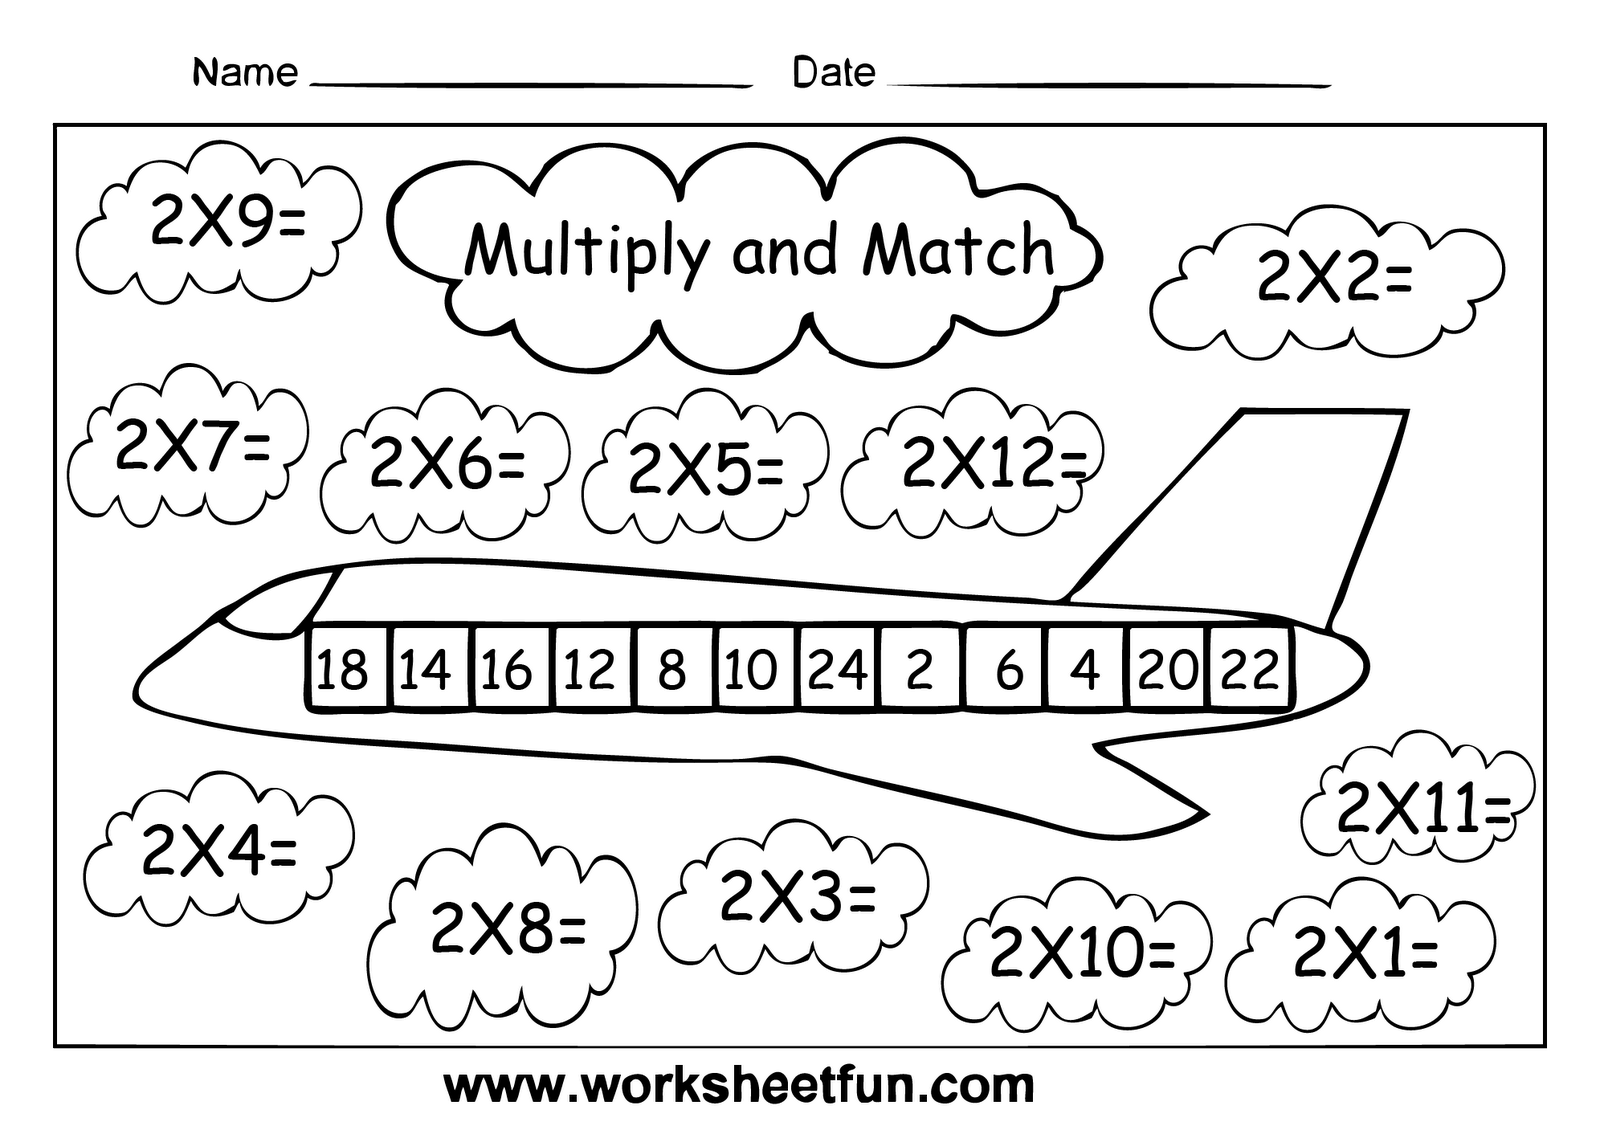 Worksheet Times Tables Fun Worksheets worksheet 7901022 maths times tables worksheets ks2 table ks2